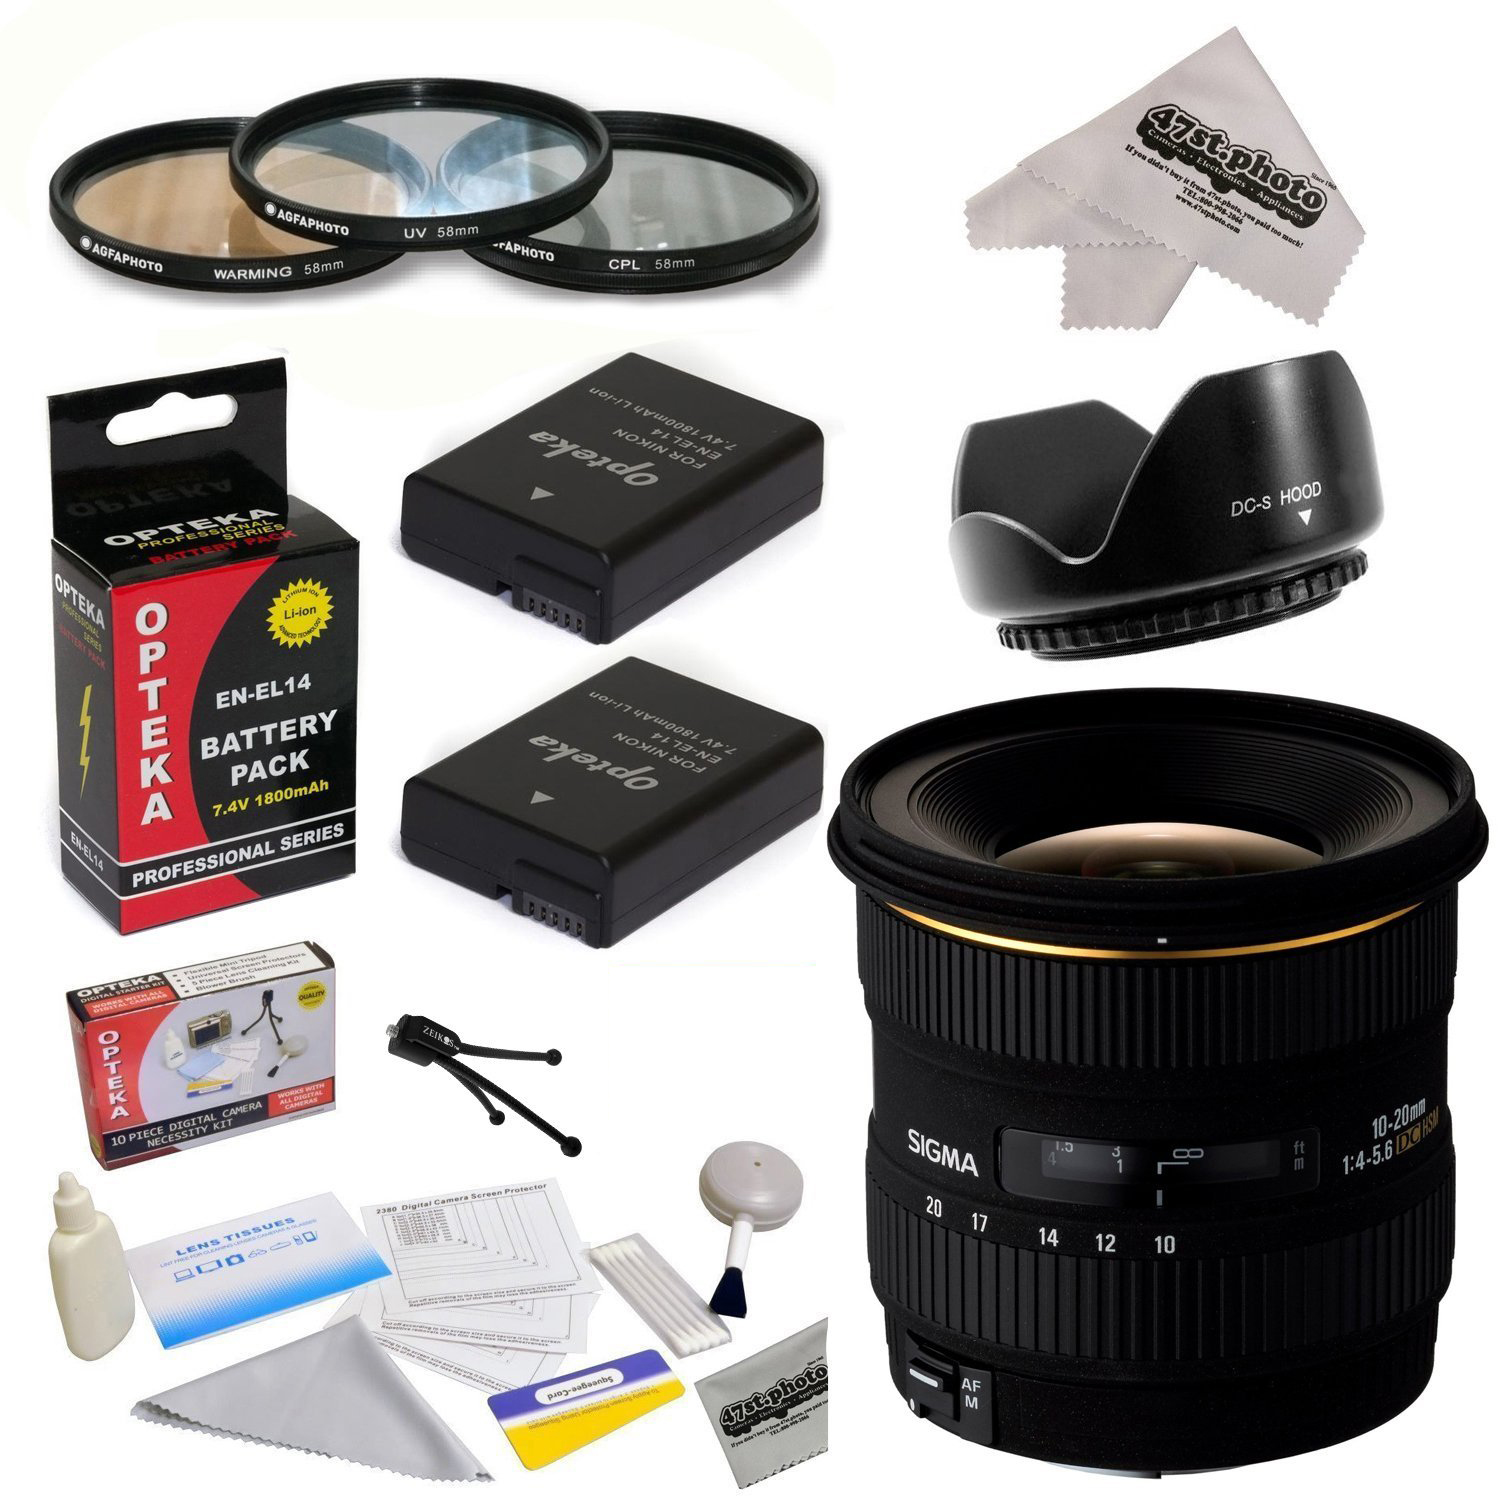 Sigma 10-20mm f/4-5.6 EX DC HSM Autofocus Lens for Nikon D3100, D3200, D3300, D5100, D5200, D5300 with 3 Piece Pro Filter Kit, Lens Hood, 2 EN-EL14 Batteries, Cleaning Kit, Microfiber